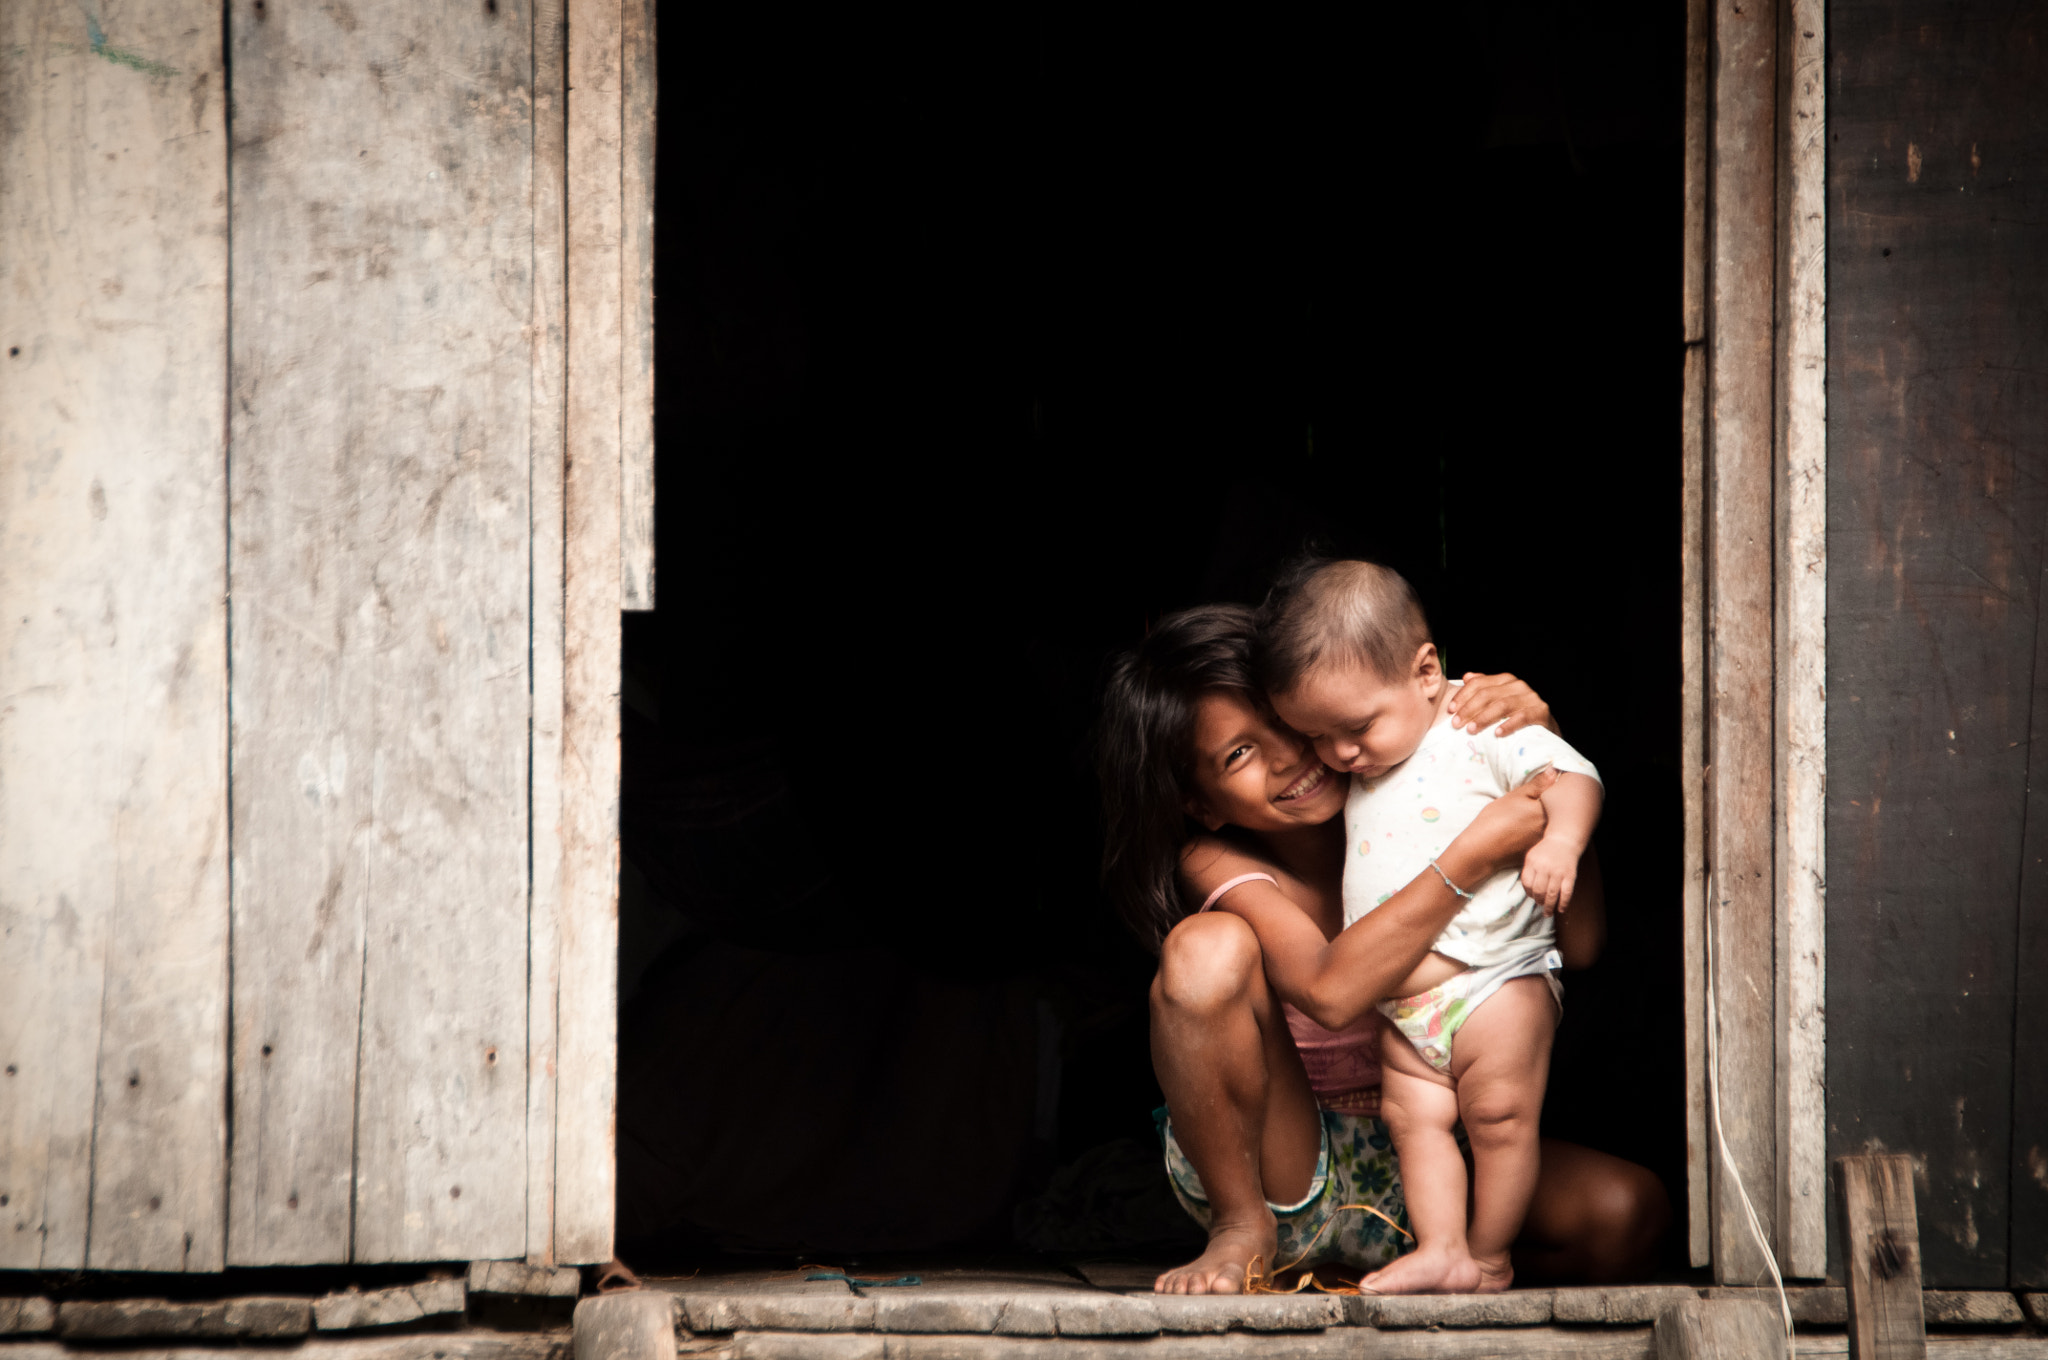 Photograph Sibling Love by Tim Beccue on 500px